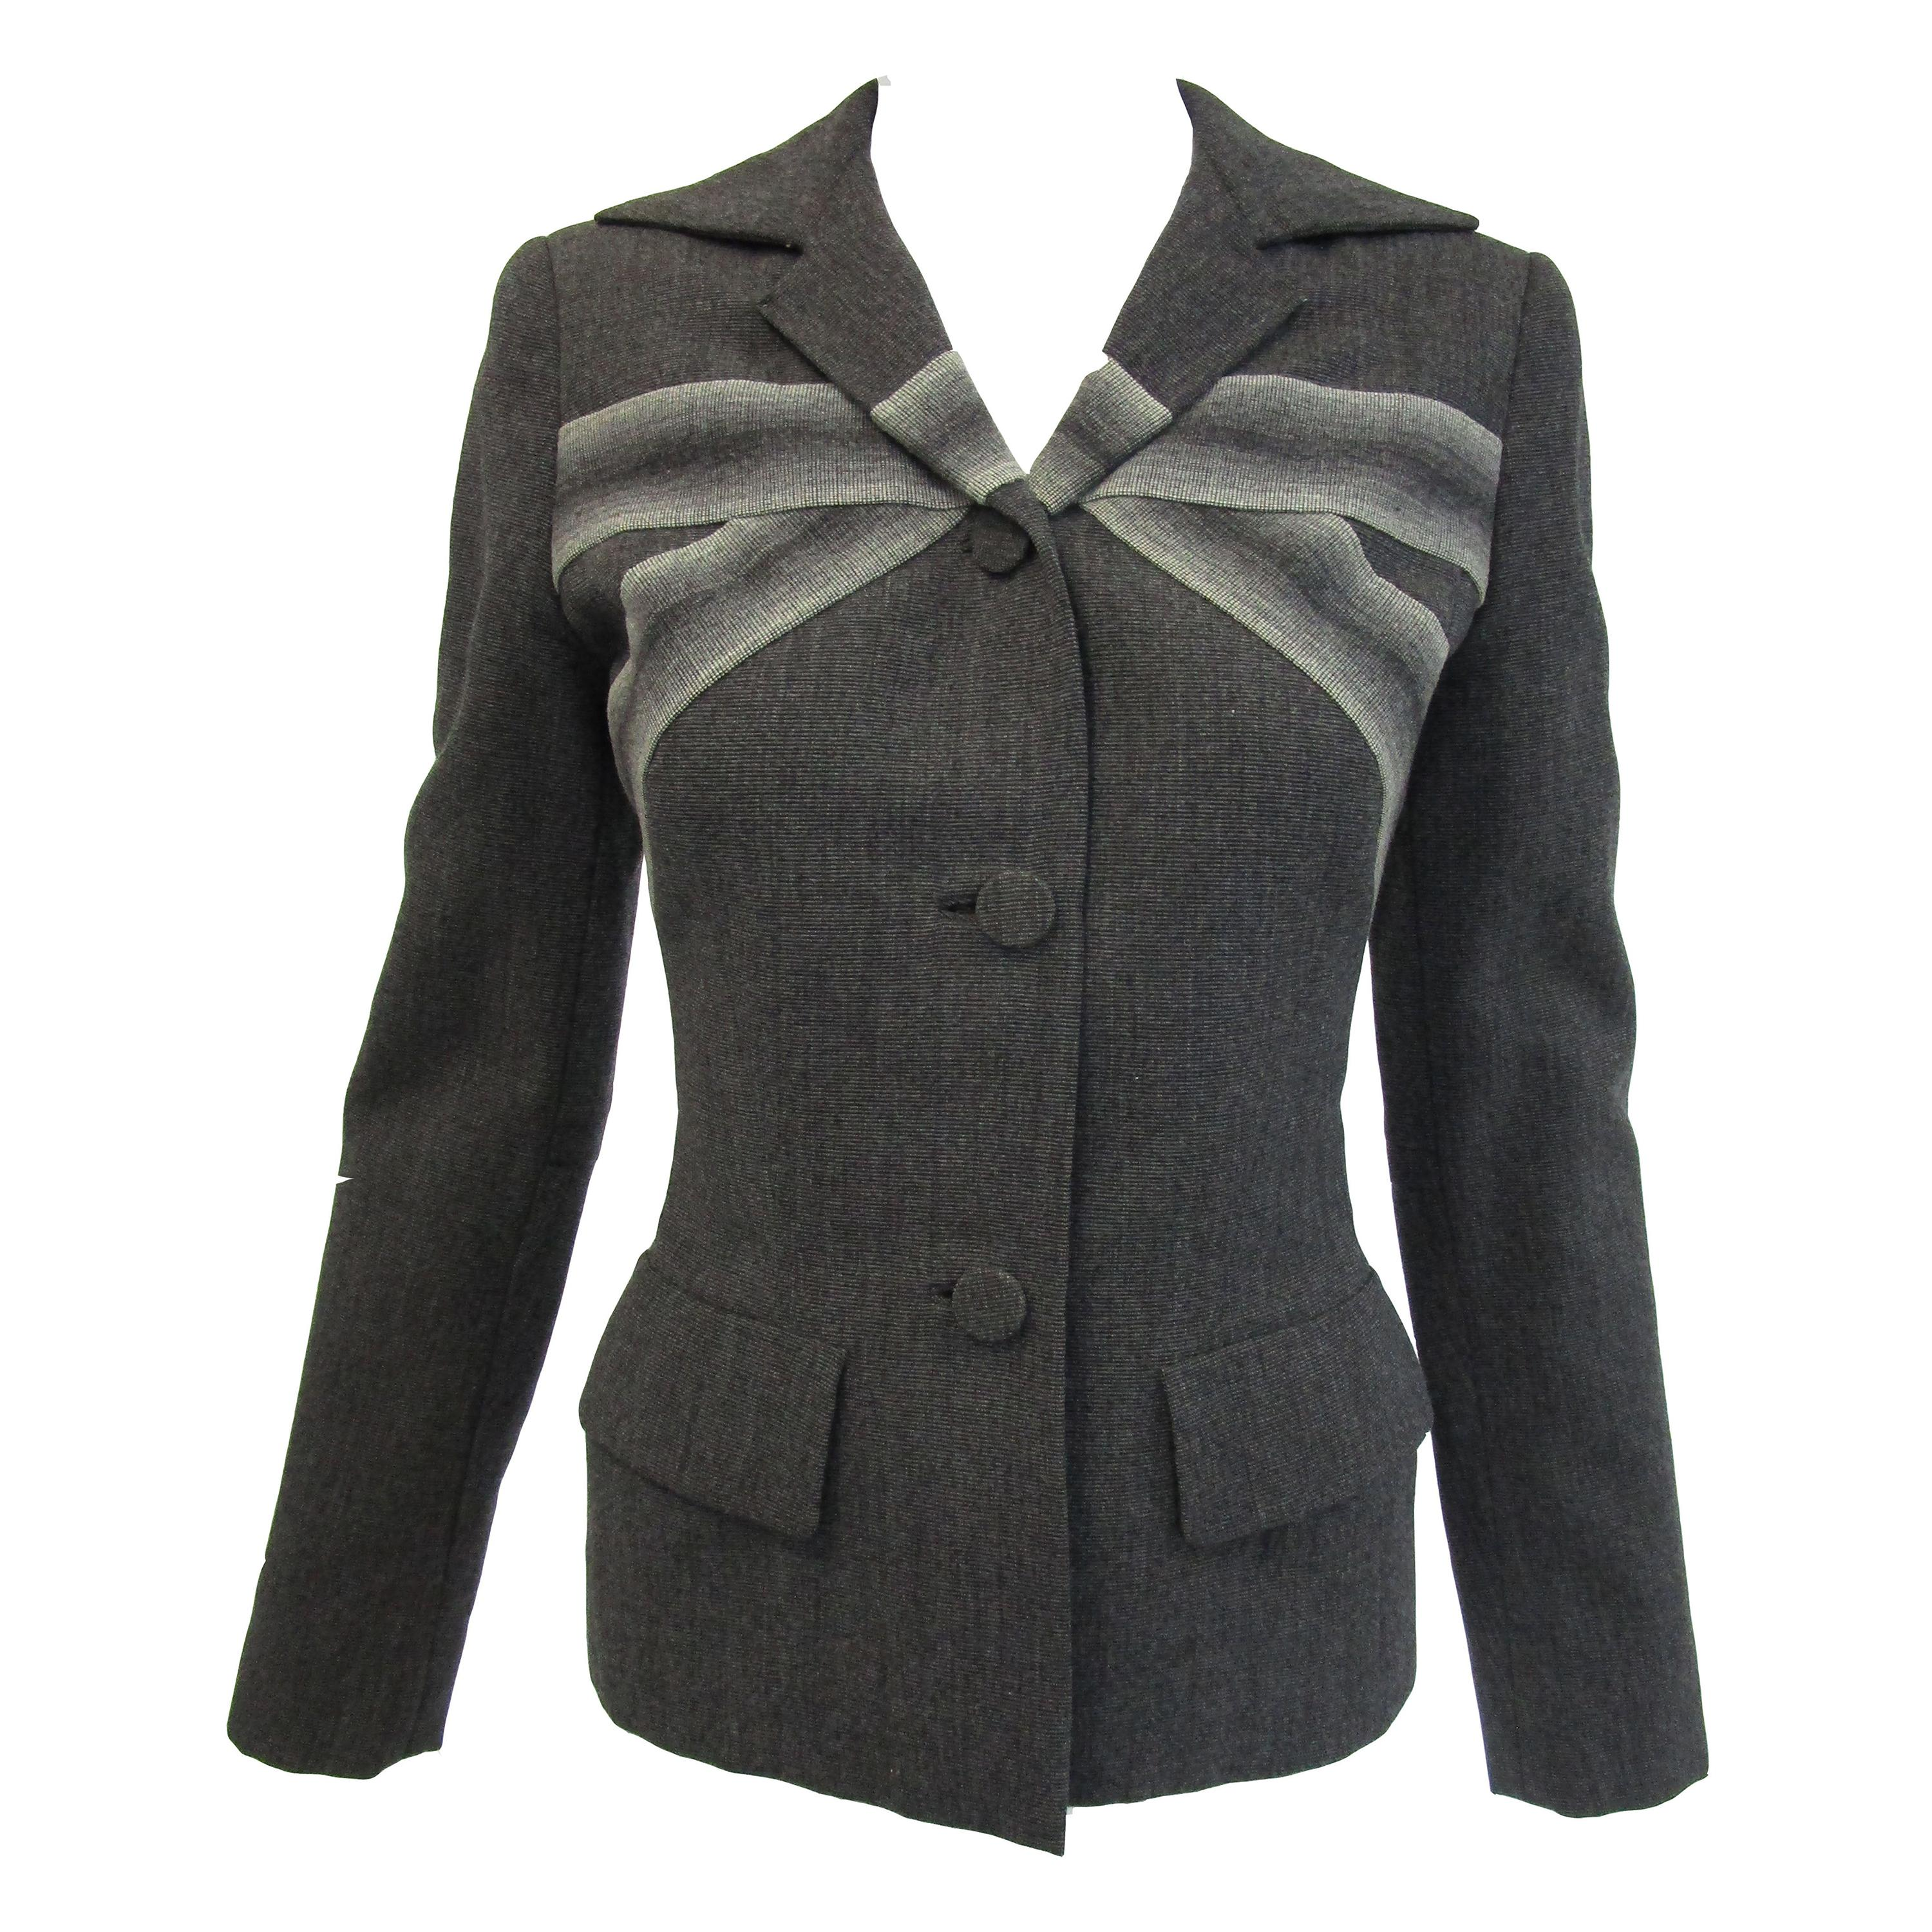 1940s Gilbert Adrian Ash Grey Wool Suit Jacket with Gradient Stripes